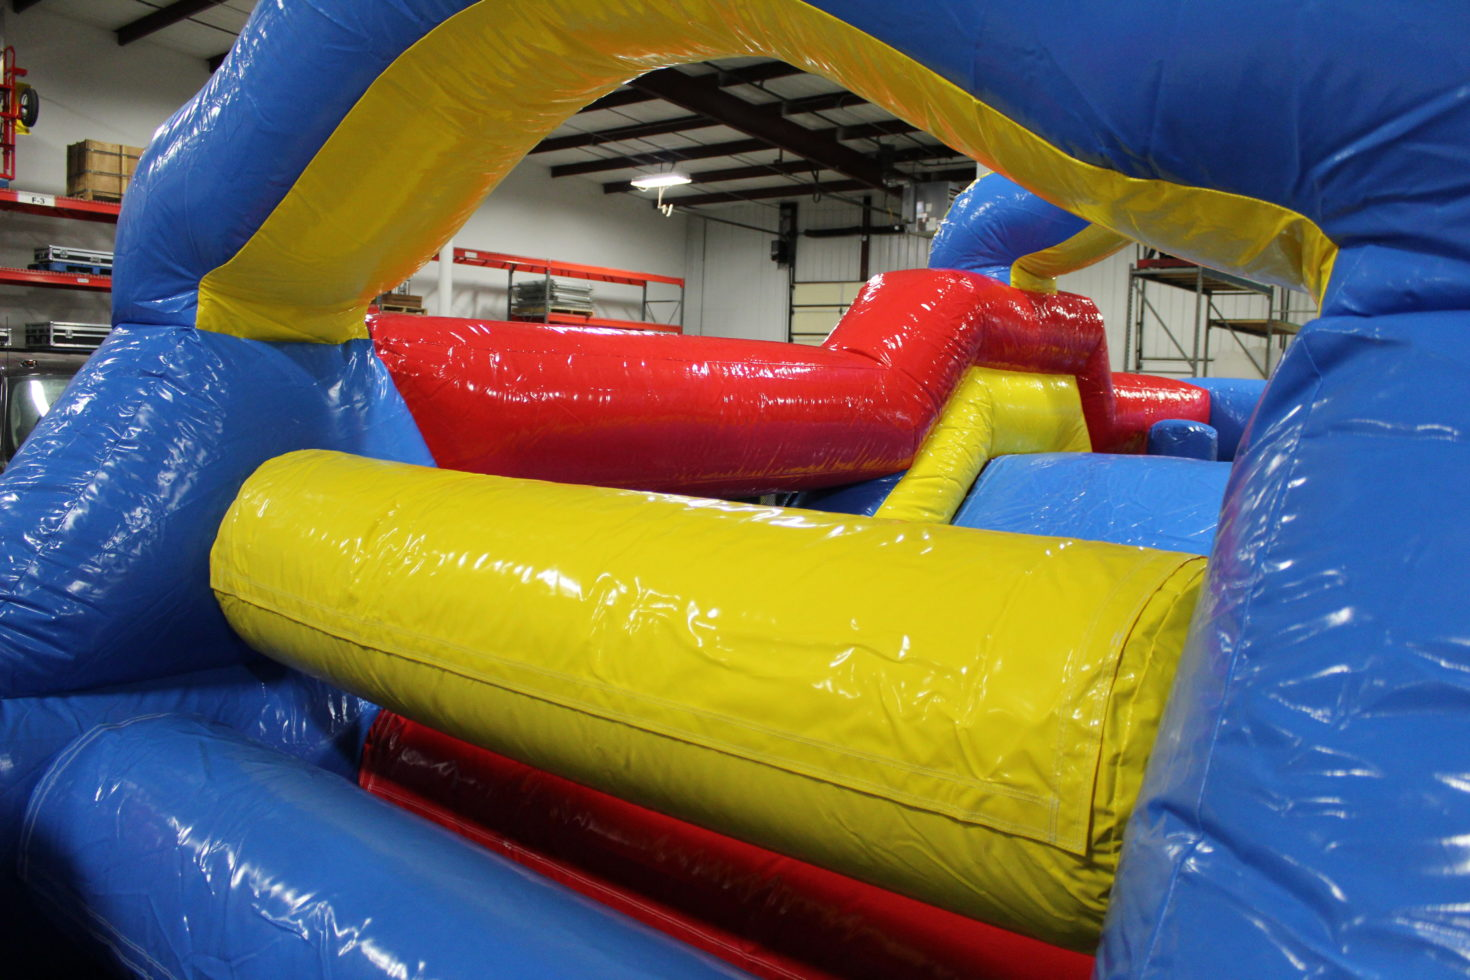 squeeze bars in 33' obstacle course